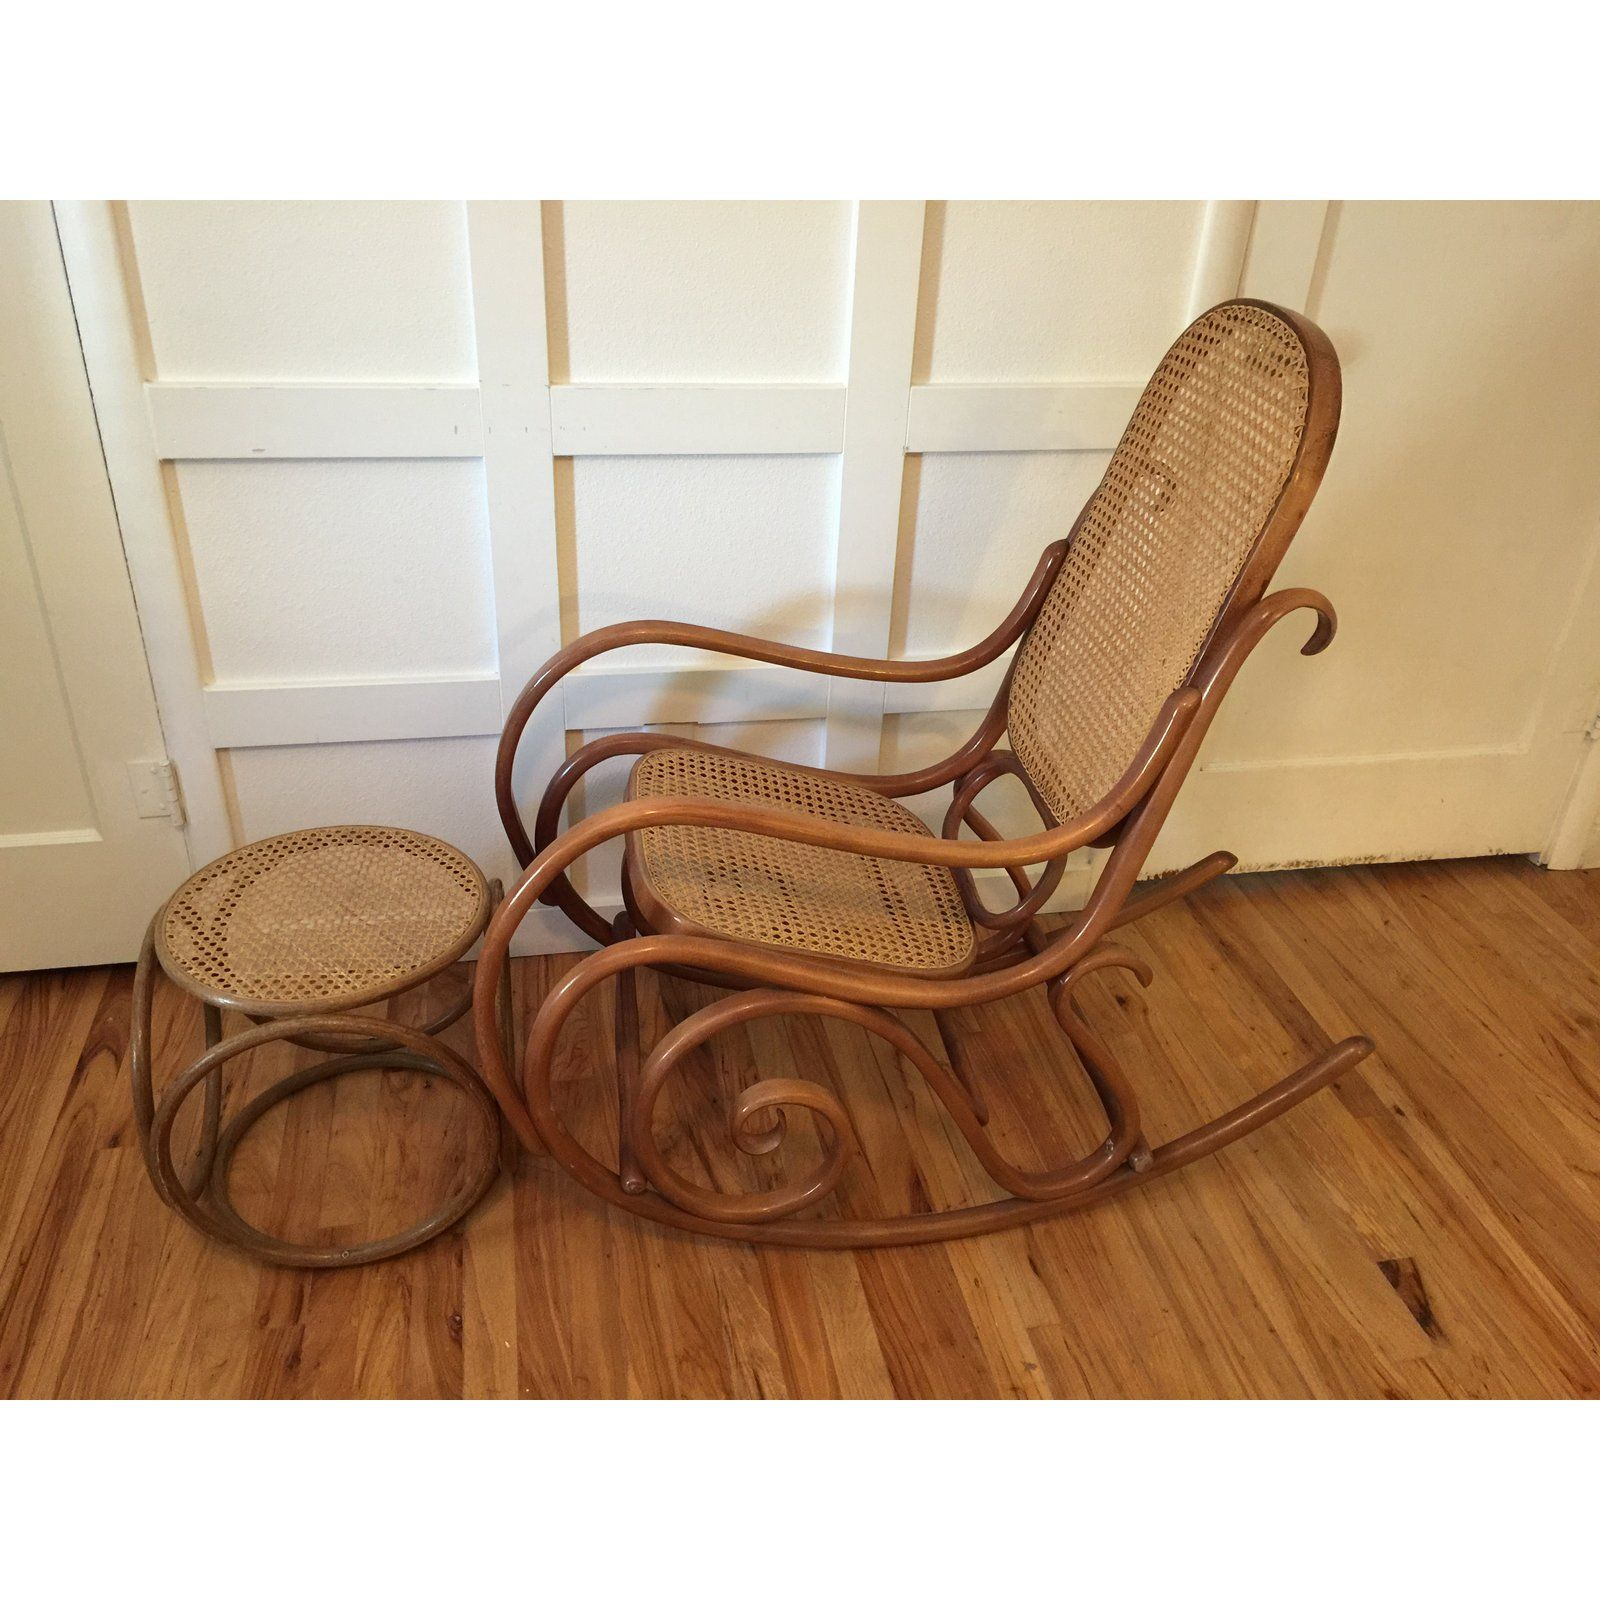 1960s Thonet Style Boho Chic Bentwood Cane Rocking Chair And Footstool 2 Pieces Cane Rocking Chair Comfy Rocking Chair Rattan Rocking Chair